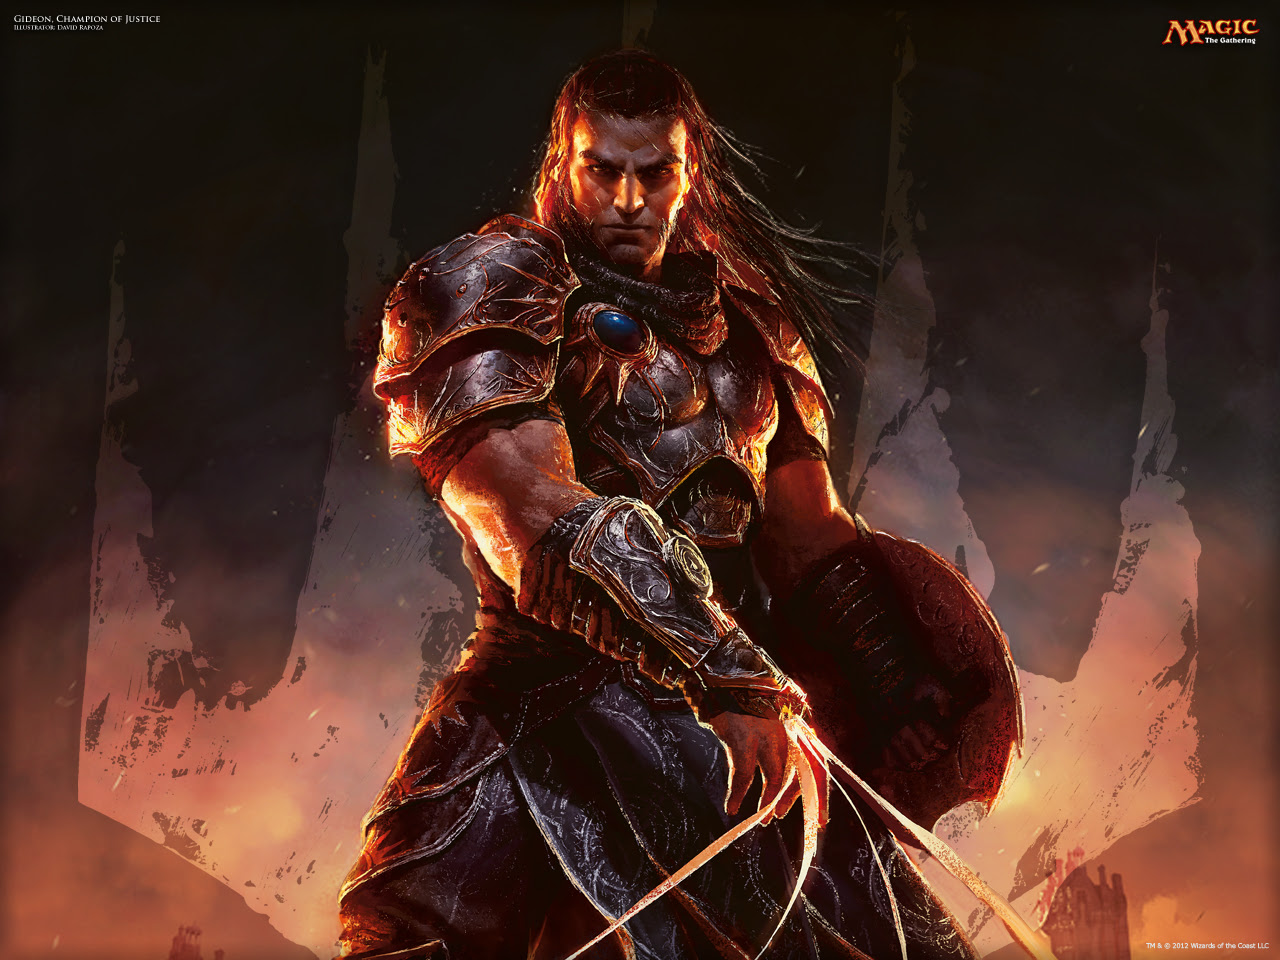 Wallpaper Of The Week Gideon Champion Of Justice Magic The